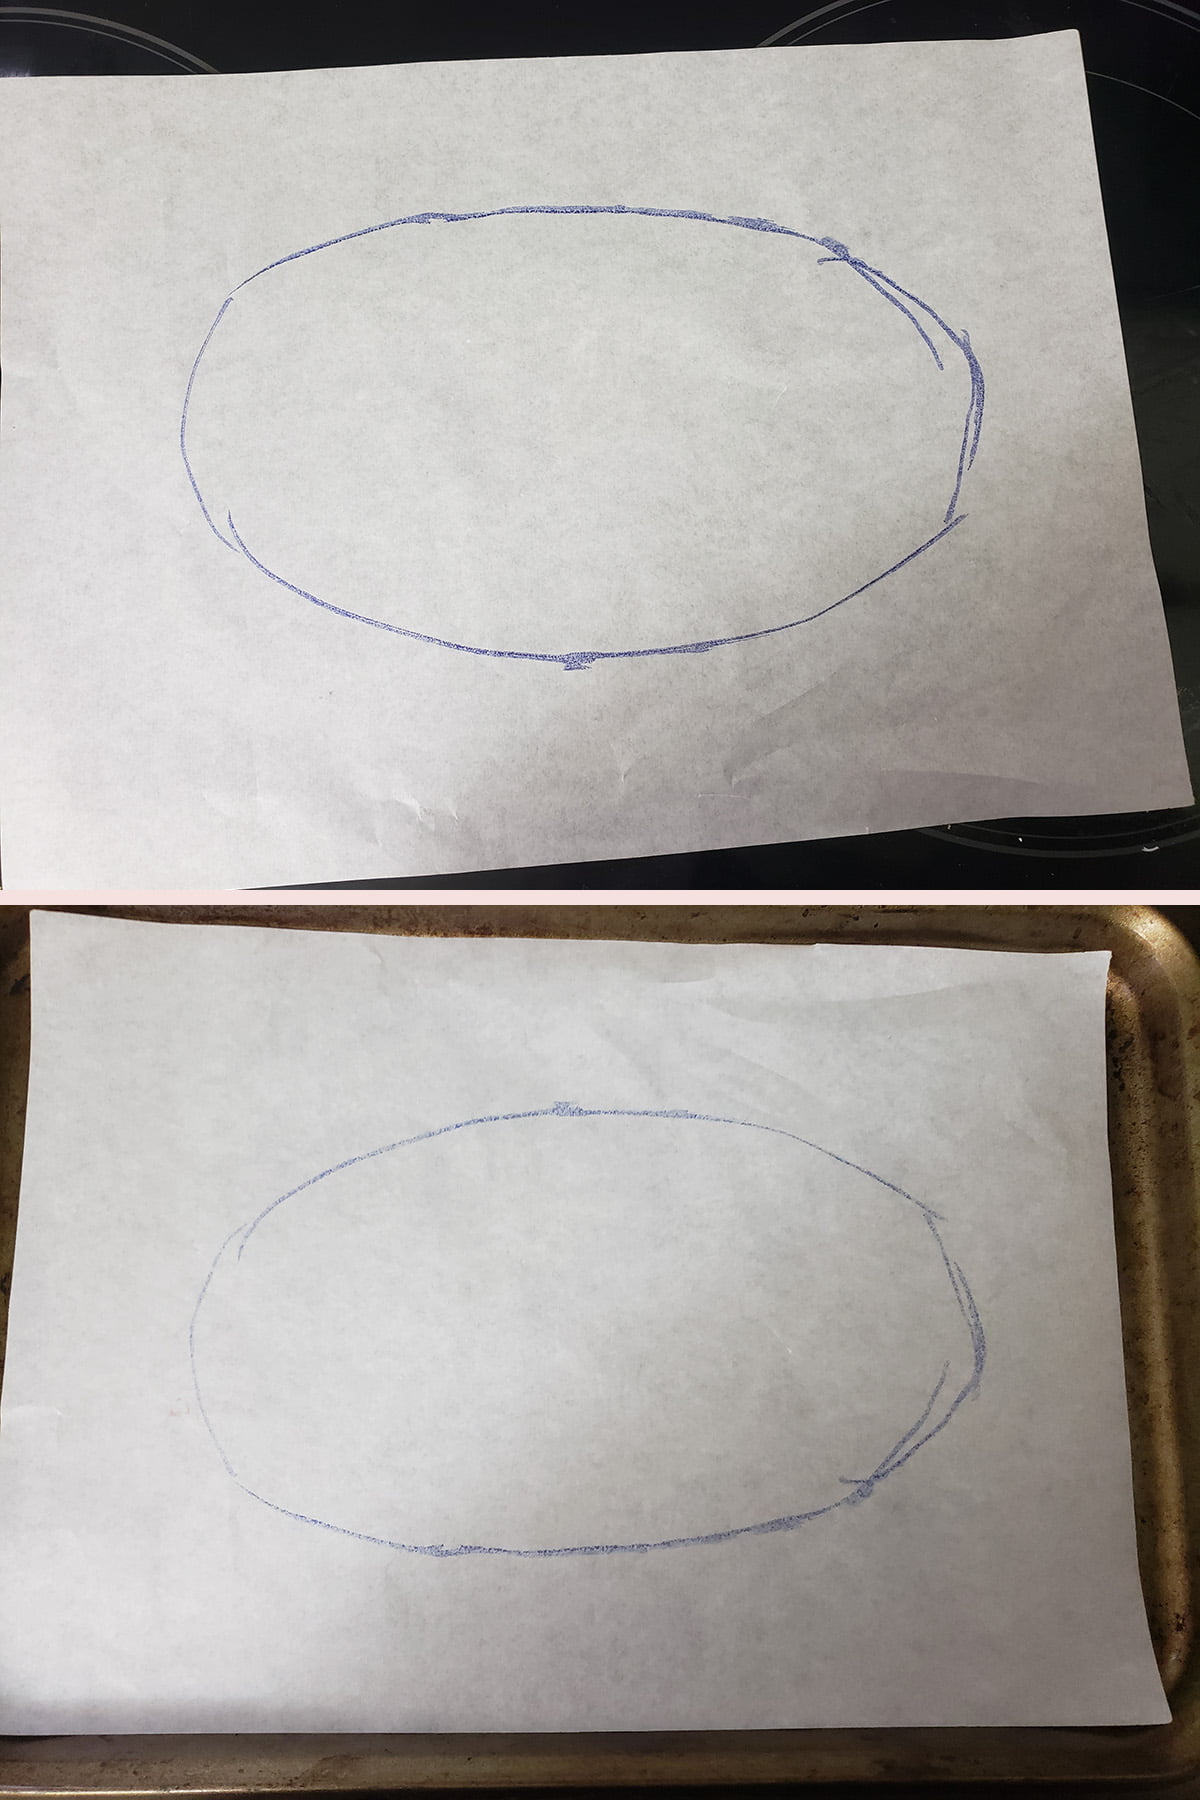 A two part compilation image showing an egg shape drawn on parchment paper, and that piece of parchment placed face down on a baking sheet.